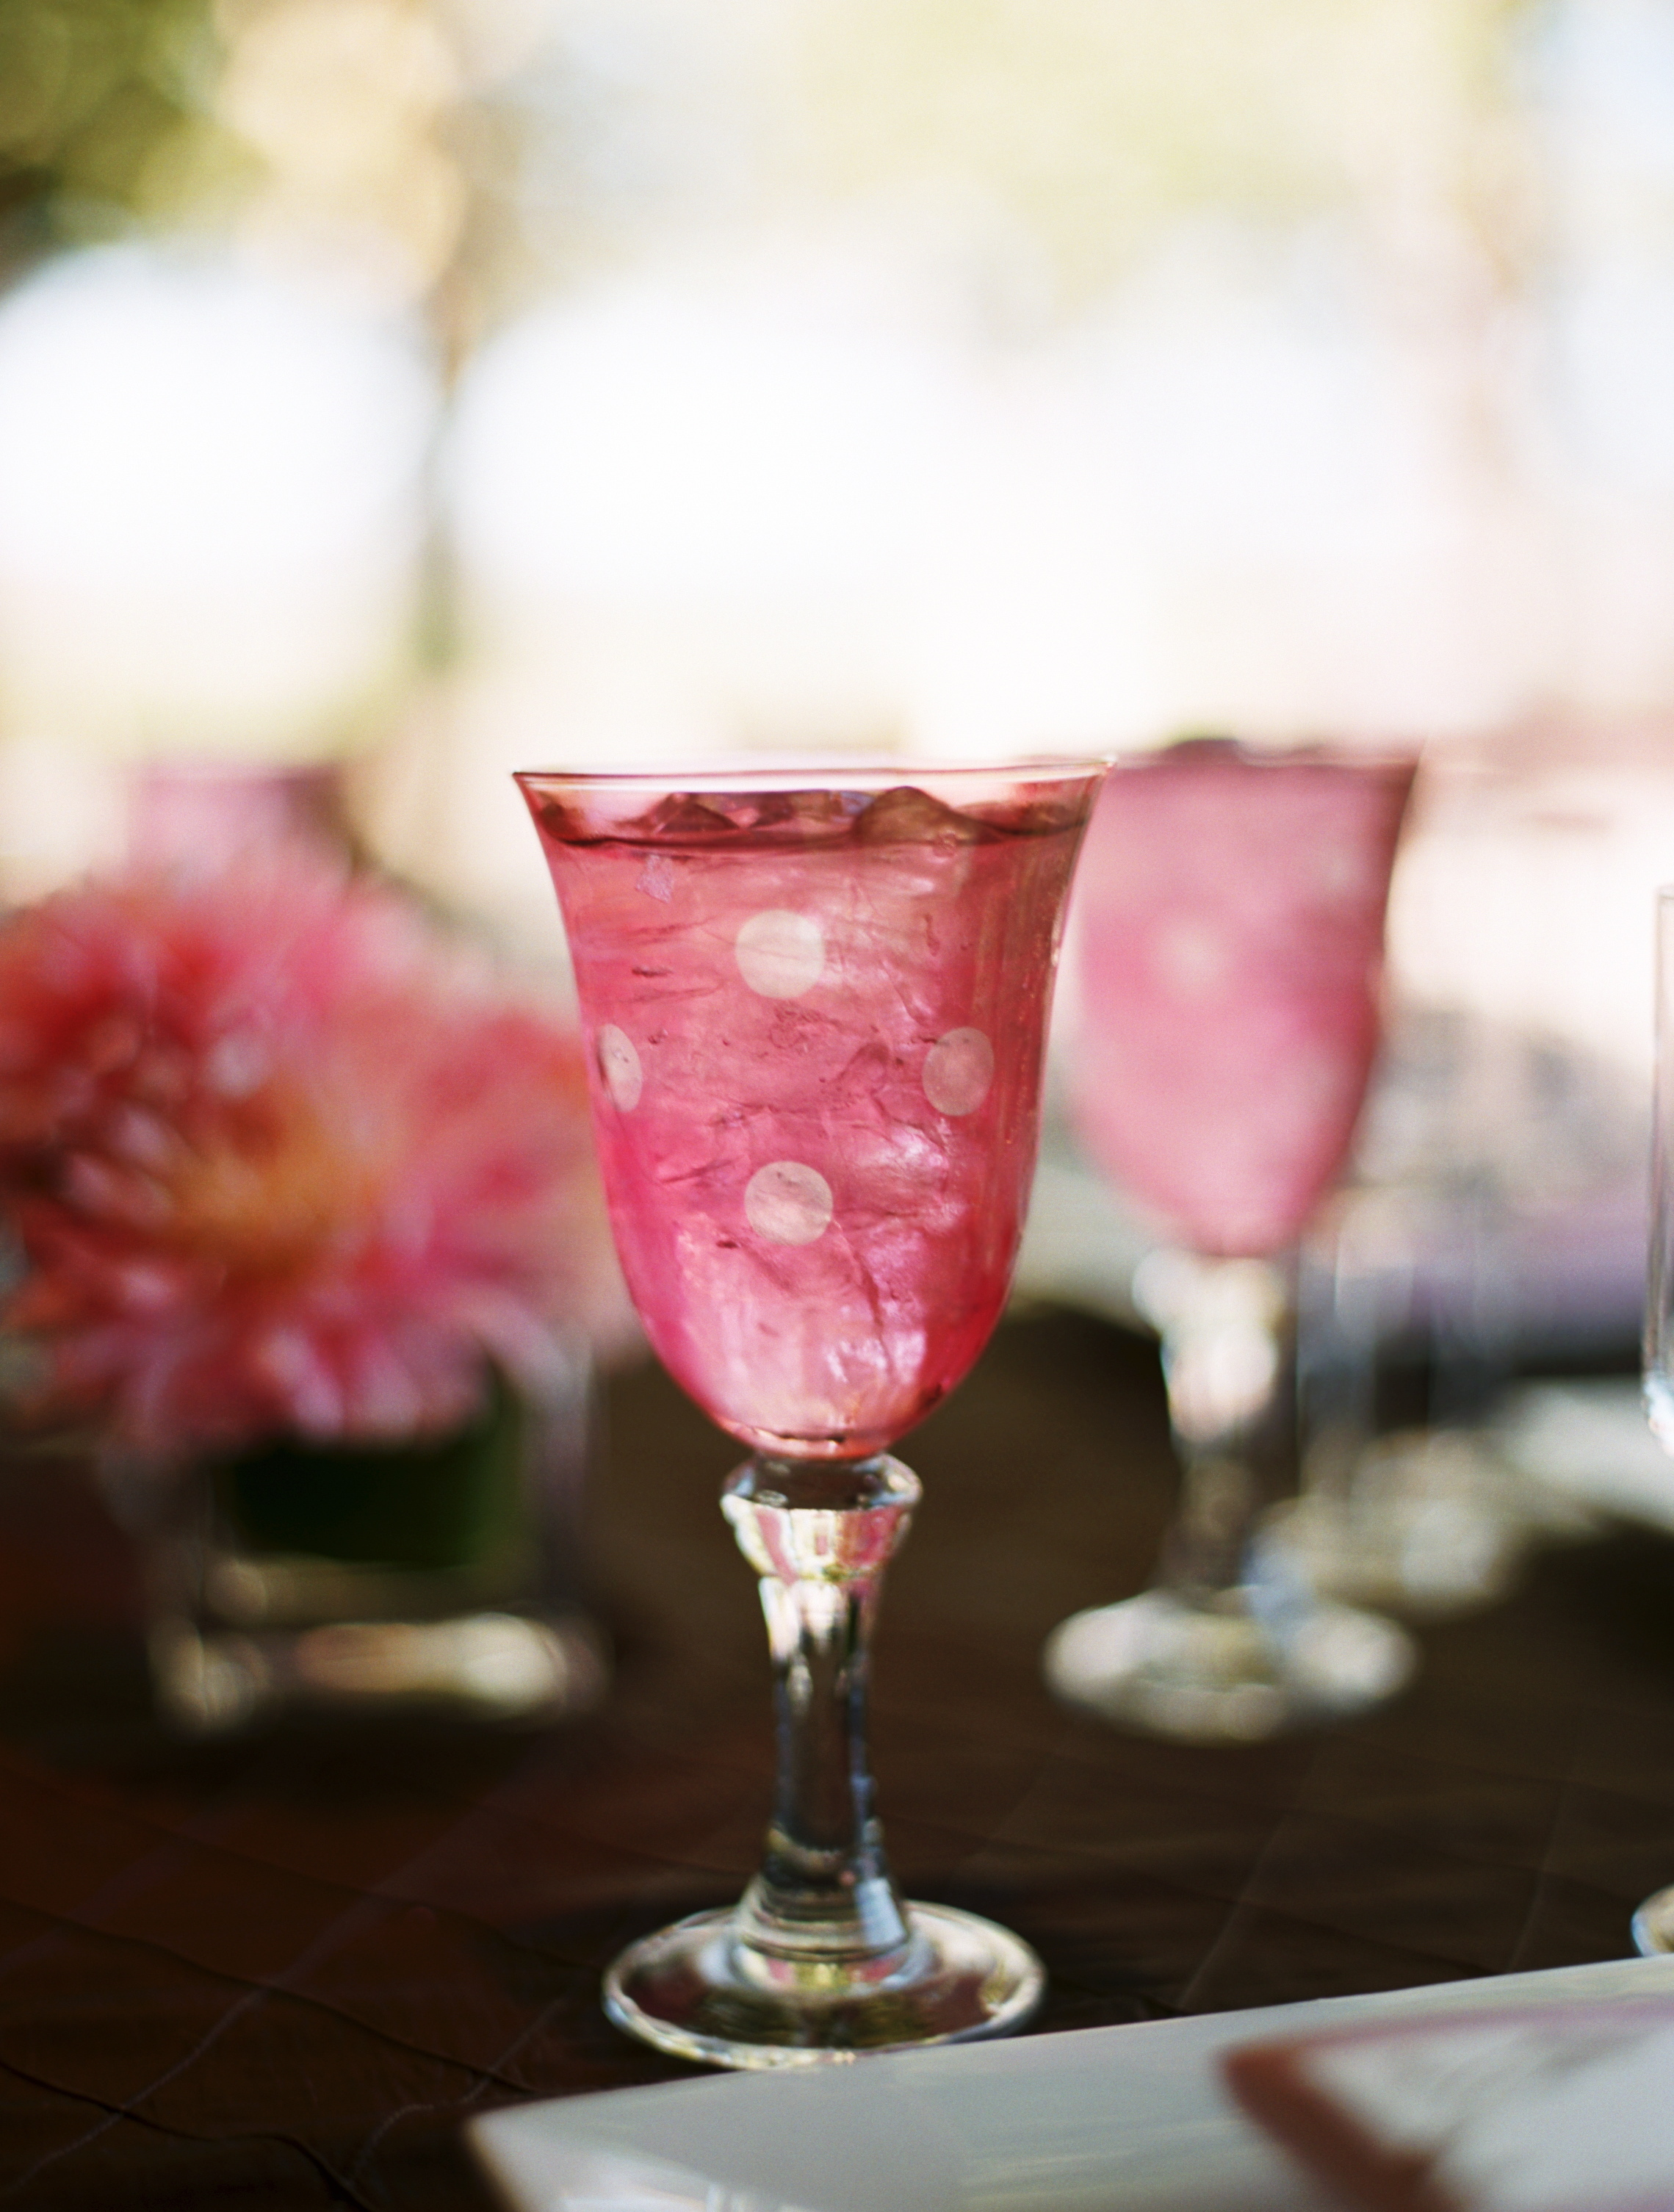 Reception, Flowers & Decor, Decor, Registry, pink, brown, Vineyard, Drinkware, Wedding, And, Glasses